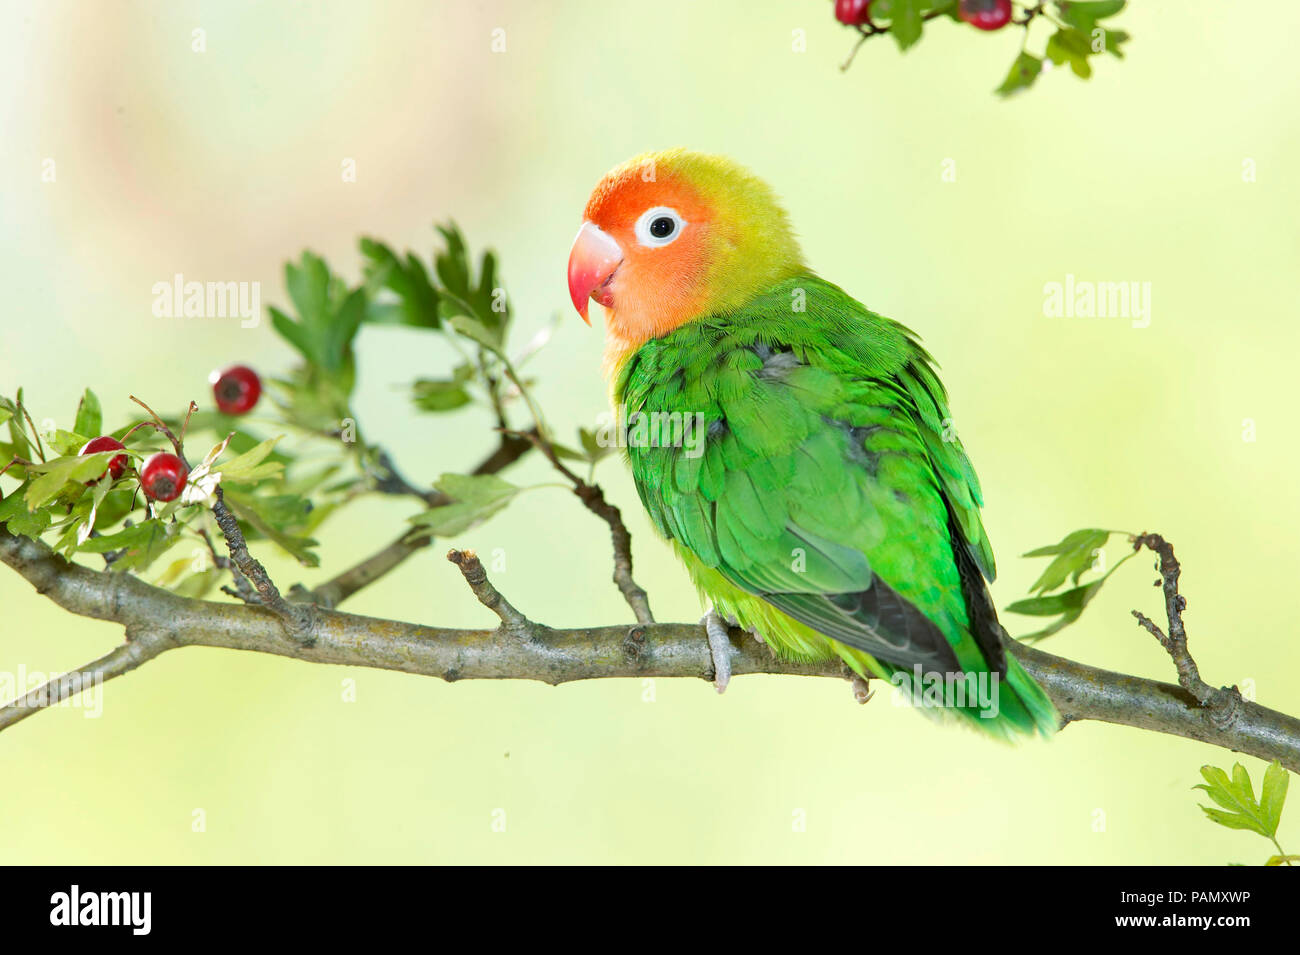 Lilians Lovebird, Nyassa Lovebird (Agapornis lilianae). Adult perched on a hawthorn twig.  Germany - Stock Image